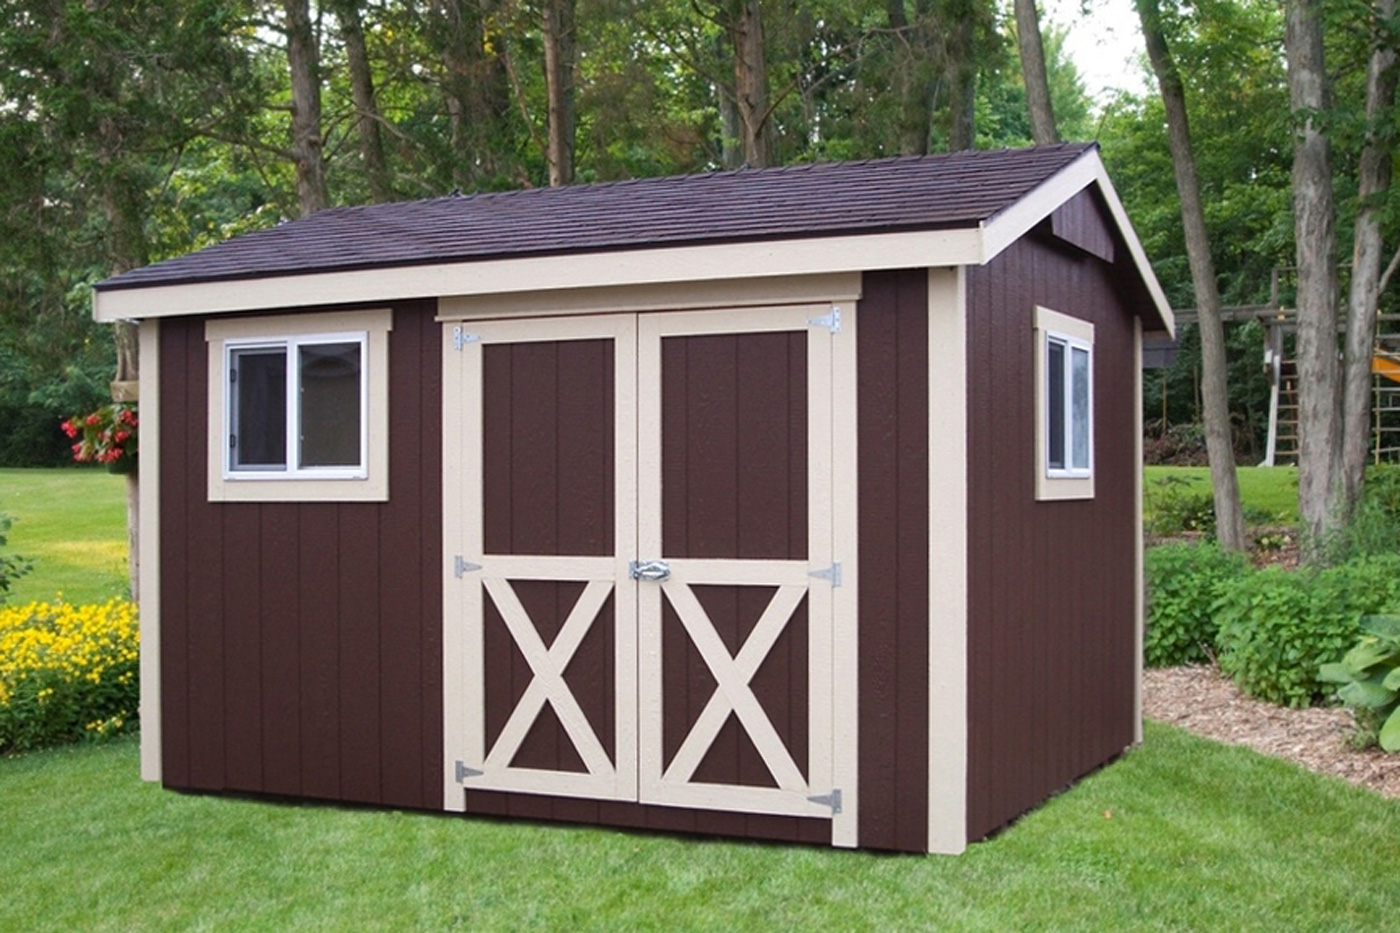 overhang with shed listitdallas for storage wood outdoor sale how cheap sheds galery